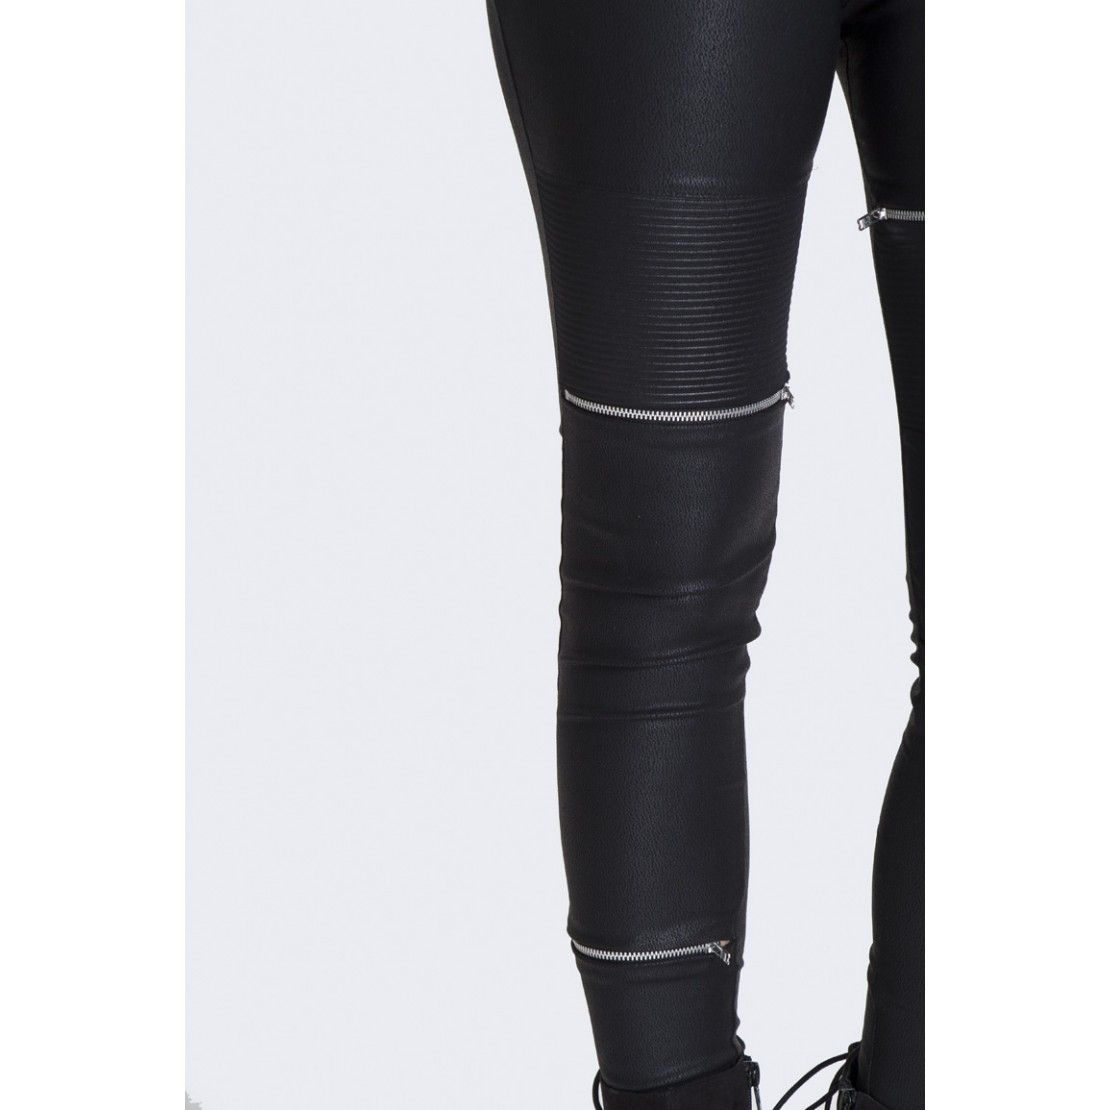 HOTMESS BLACK PU BIKER LEGGINGS WITH ZIP DETAIL - HOT!MESS HOT!MESS Fashion UK